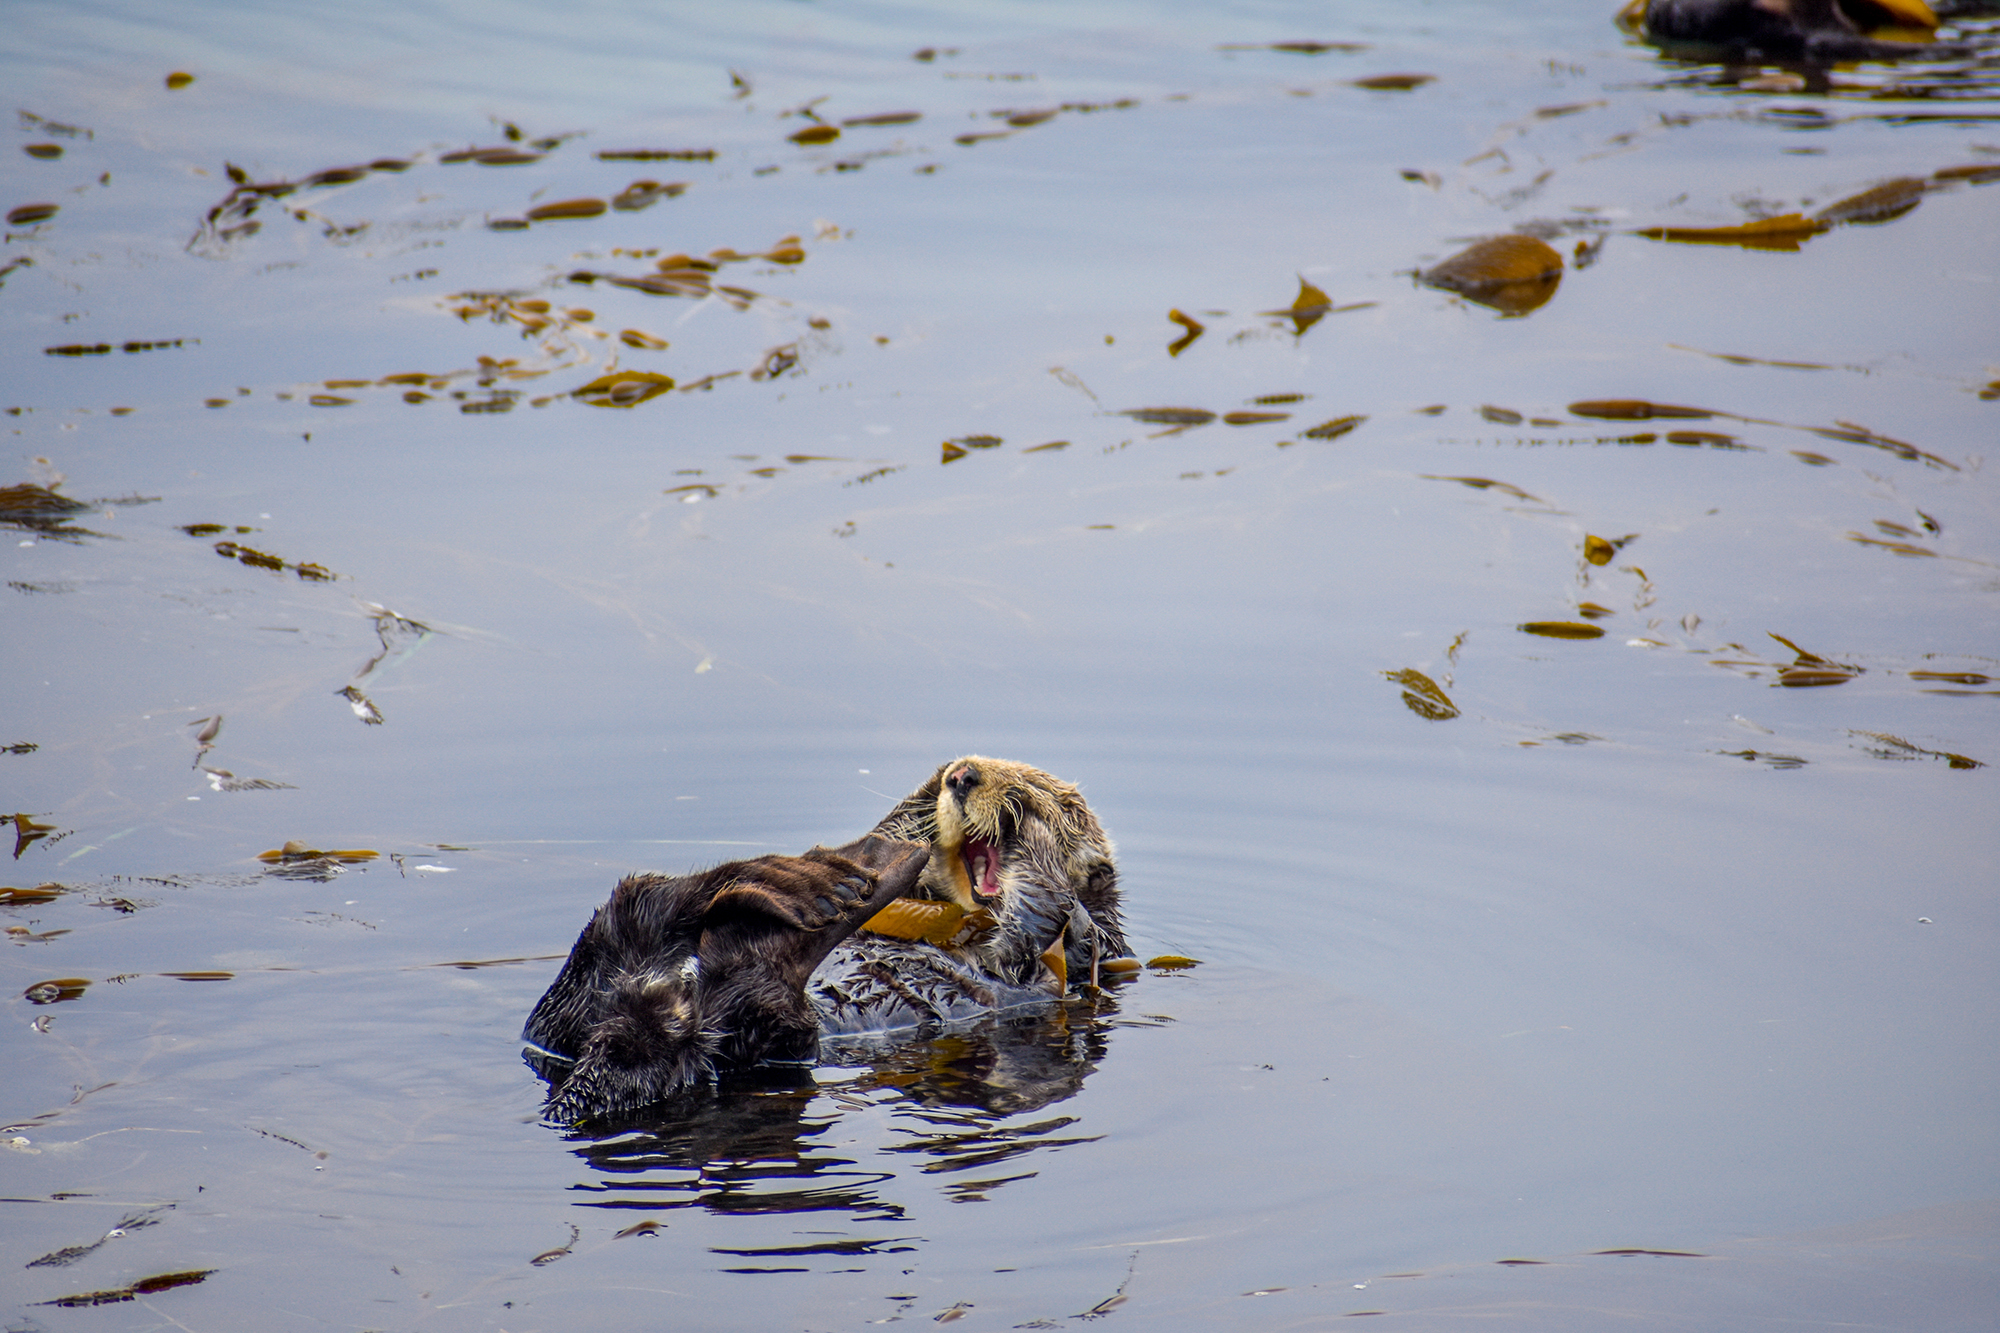 A tired sea otter lets out a yawn while floating in Morro Bay, California.